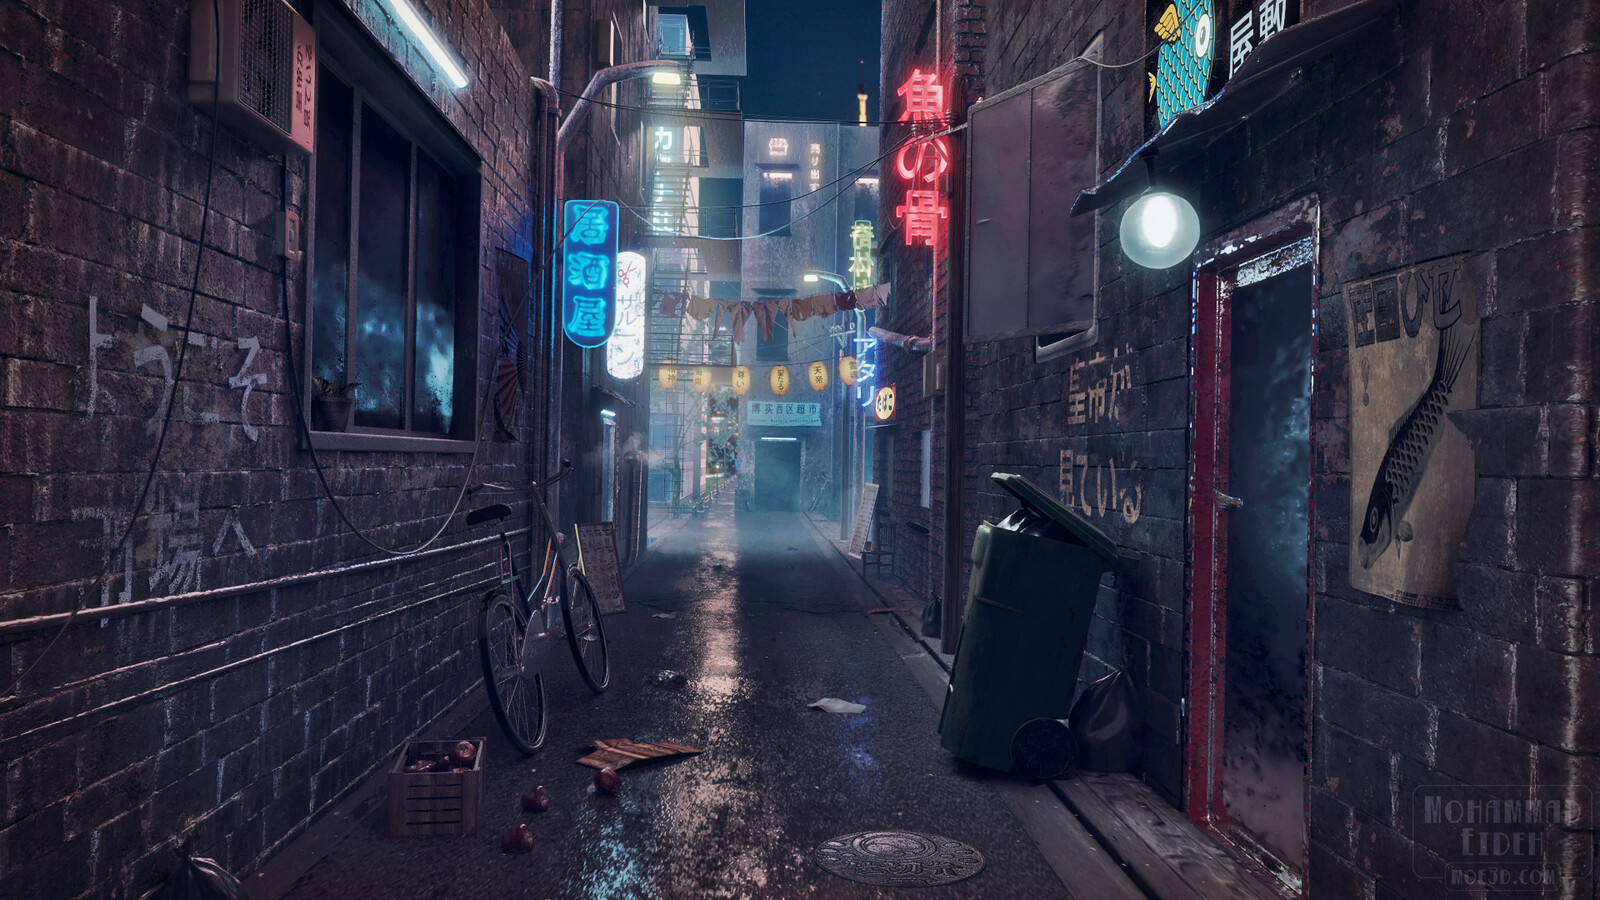 Final render. Inspired by Japanese back-alley markets